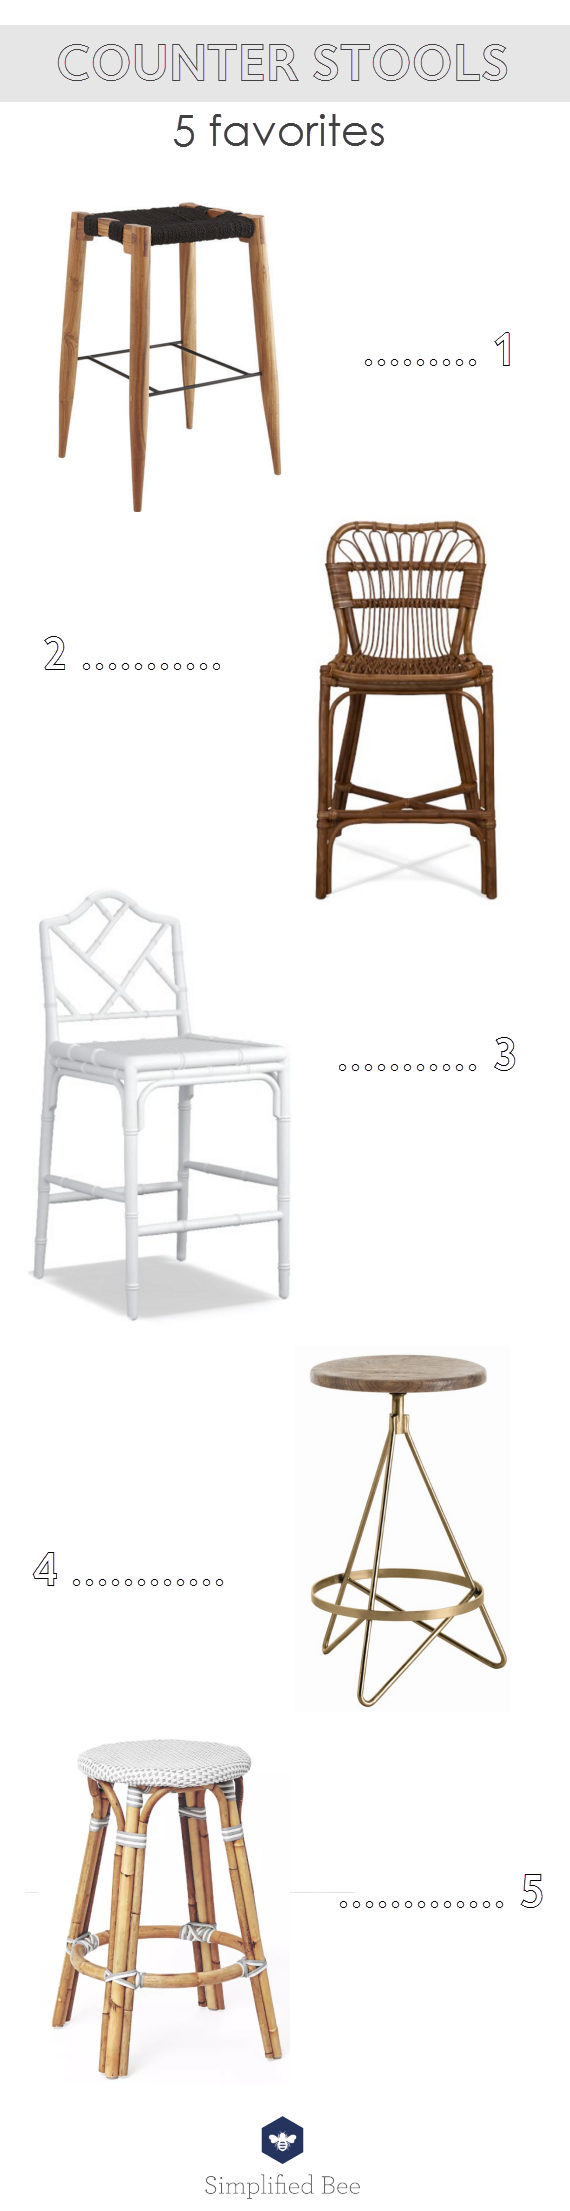 kitchen counter stools // round-up // @simplifiedbee